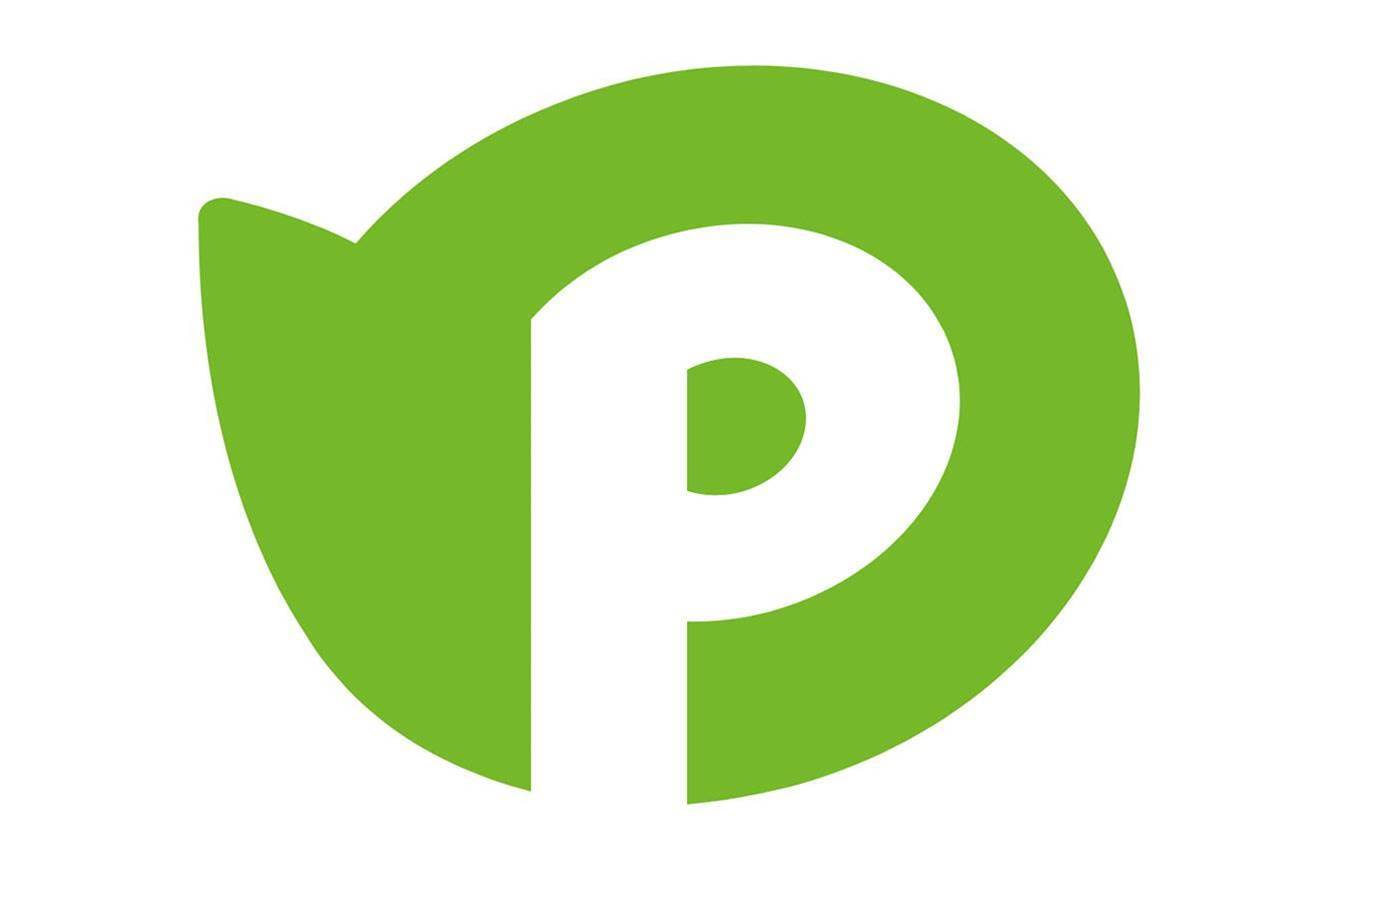 PennyTel relaunches following Telstra 4G switch